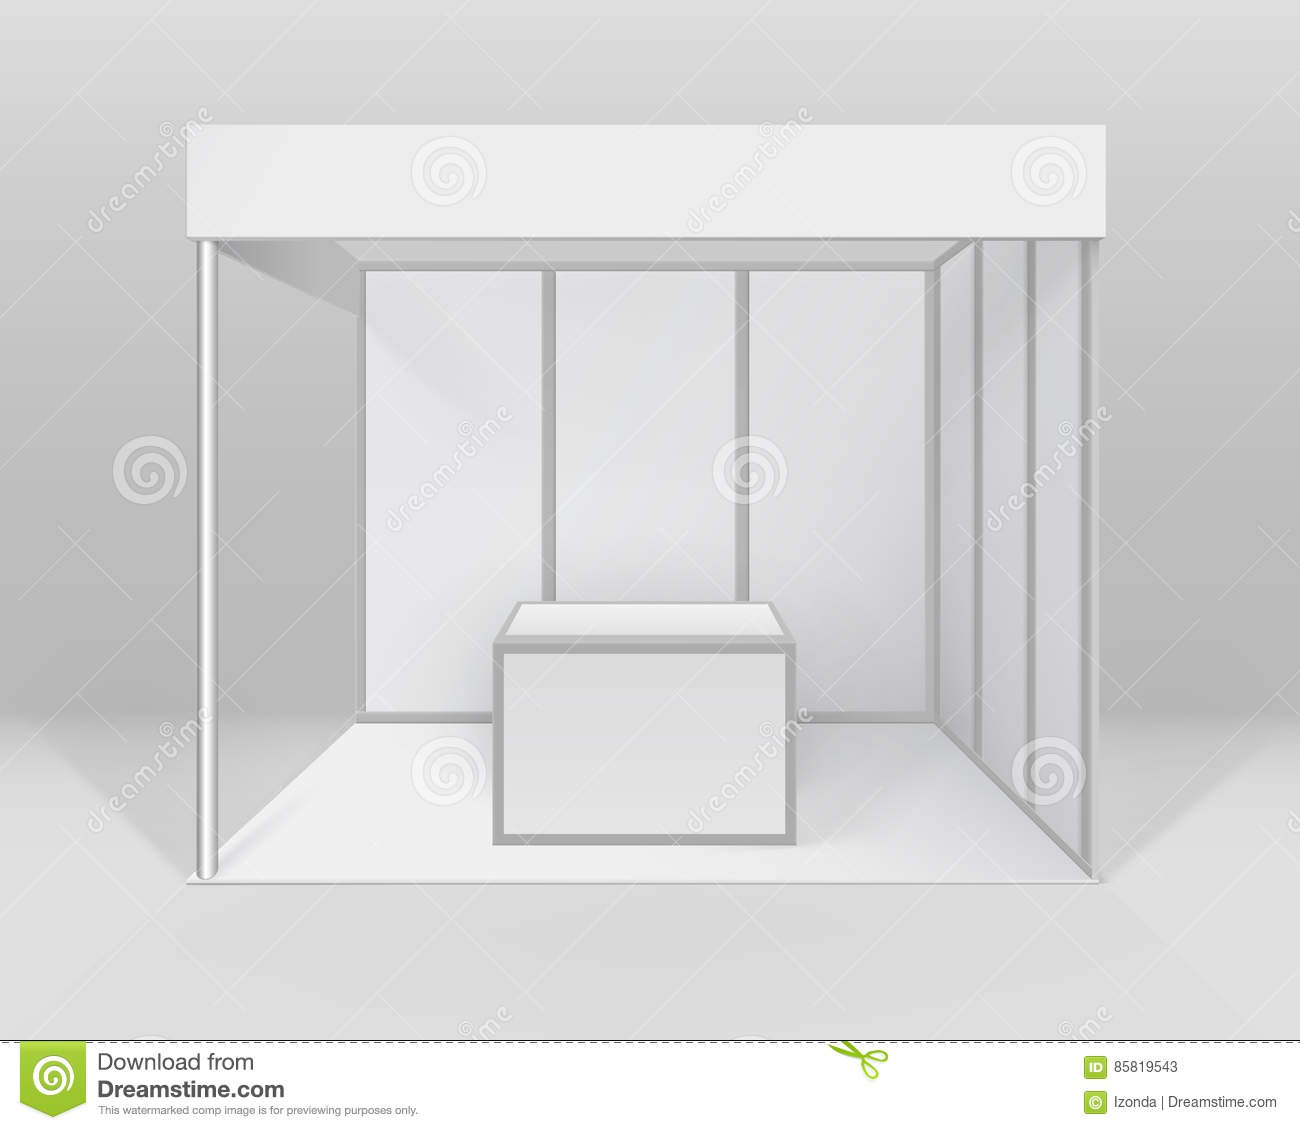 Exhibition Stand Wallpaper : Blank white trade exhibition stand vector illustration